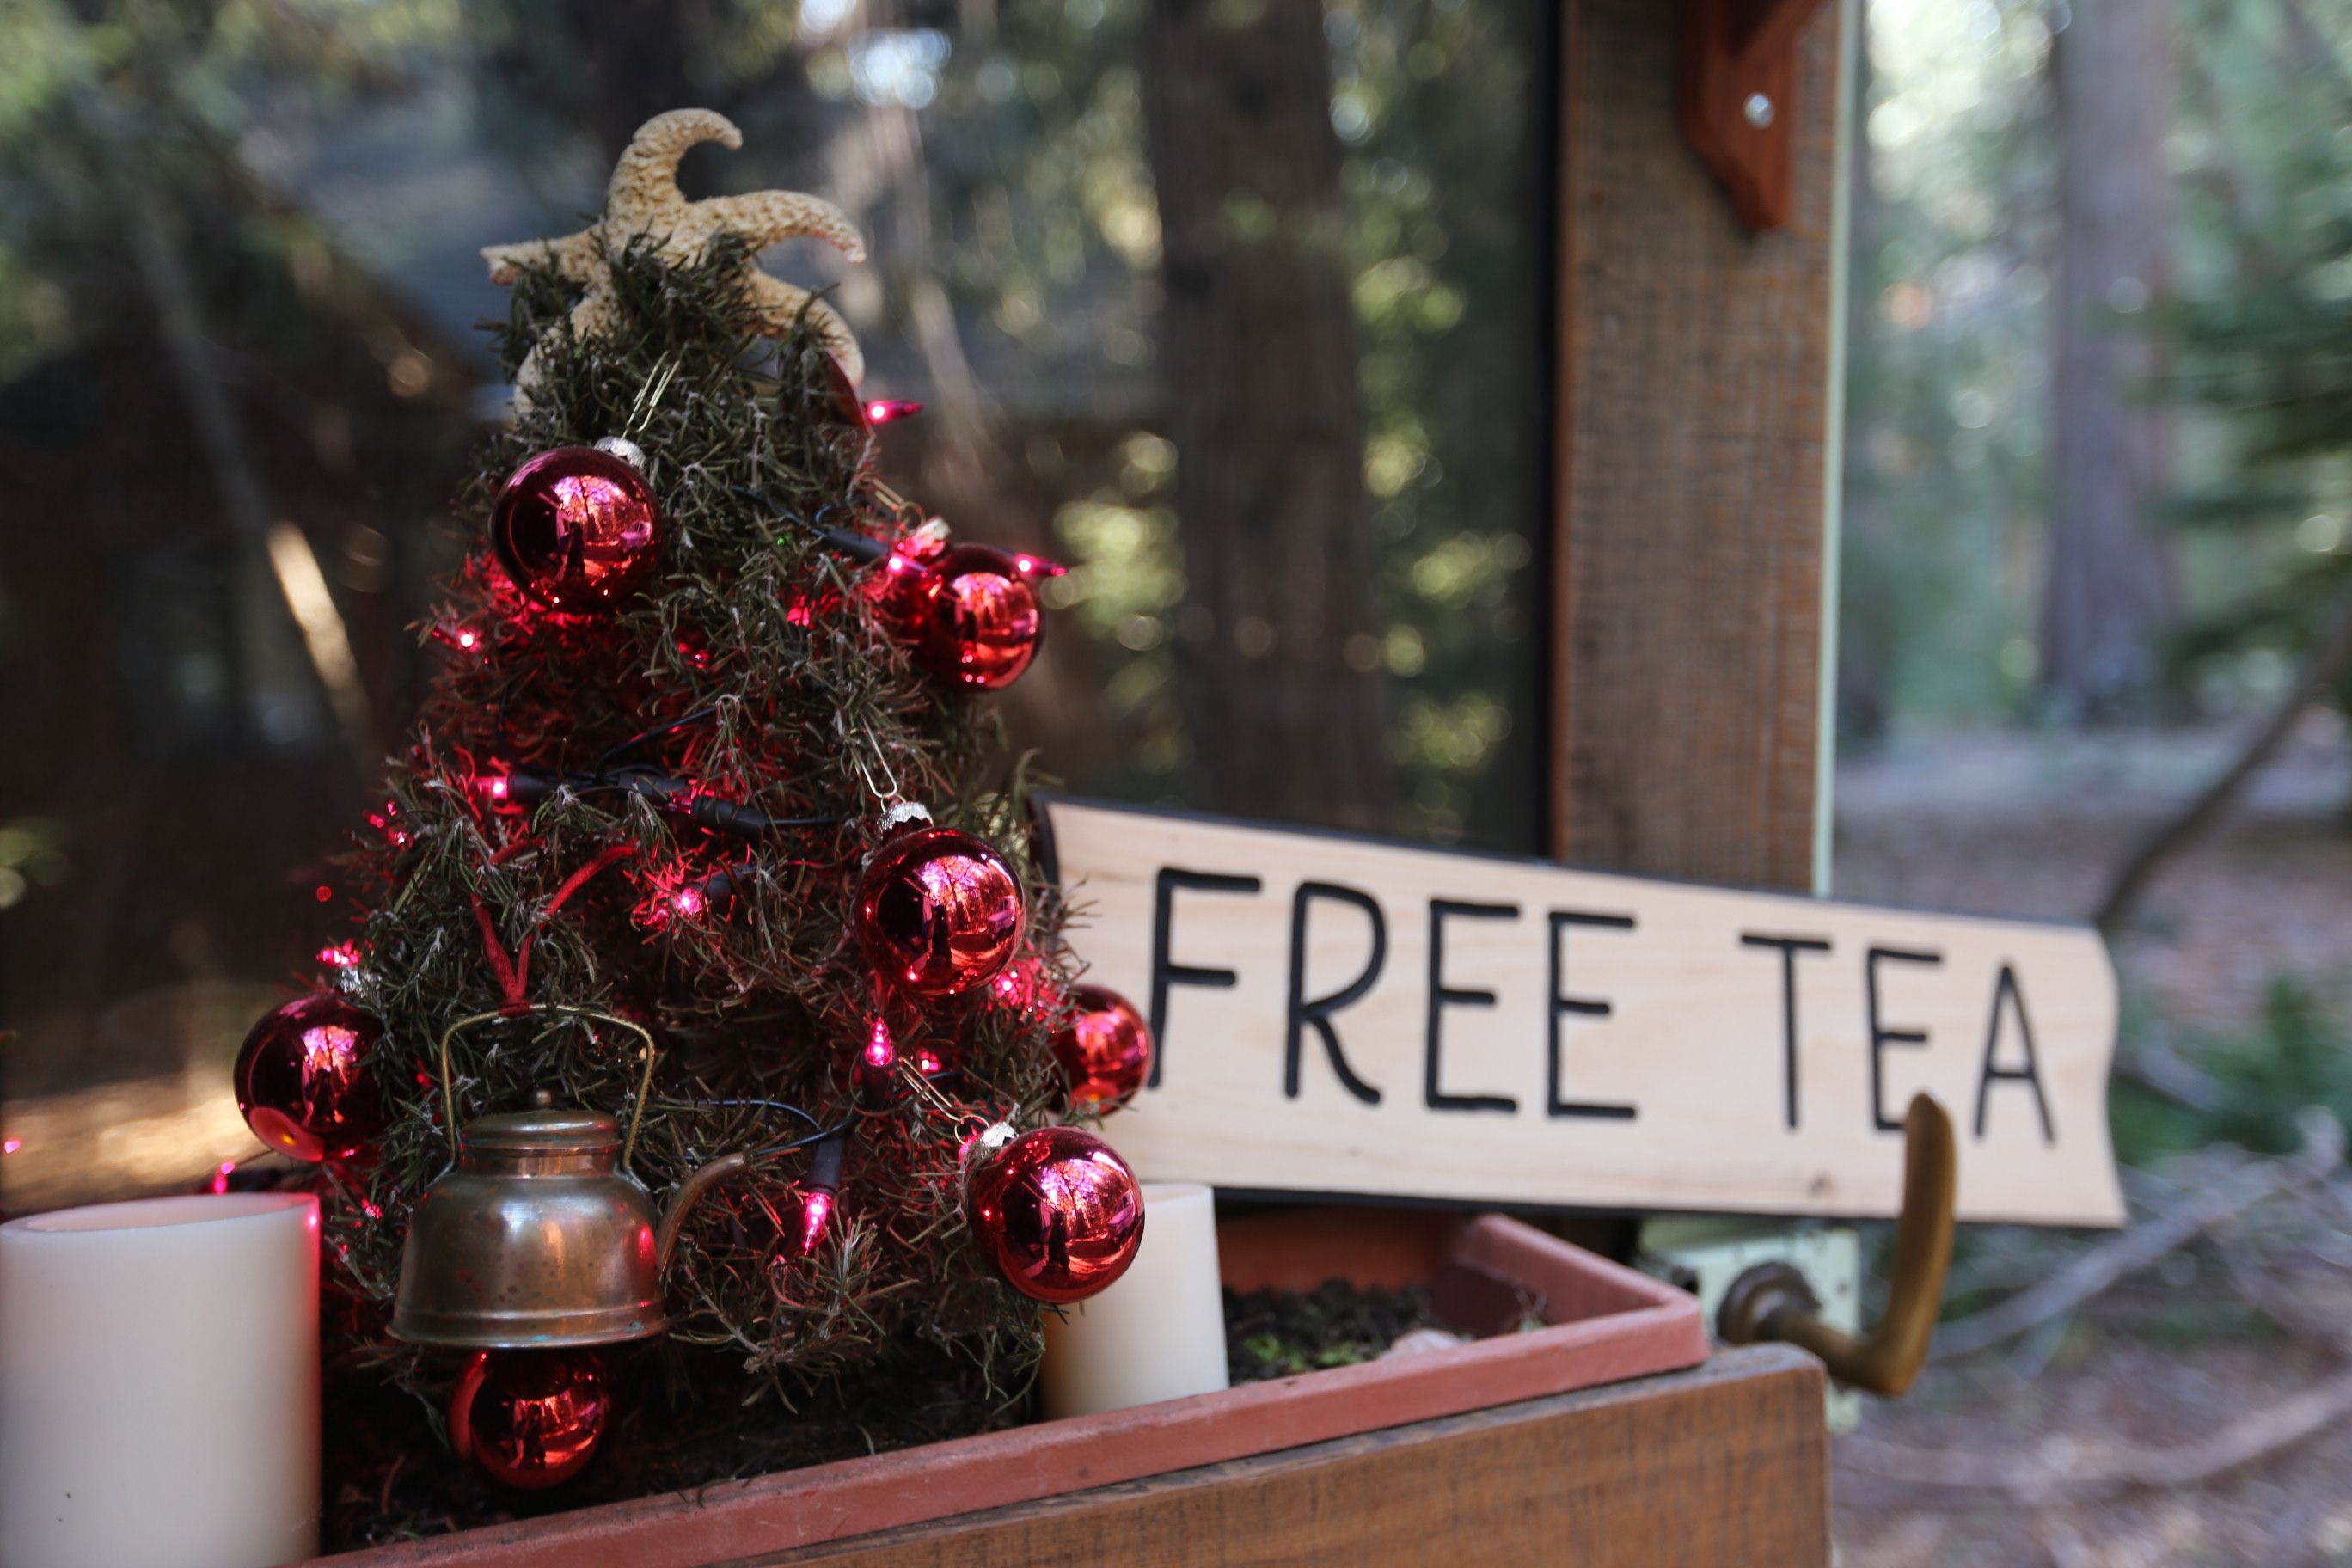 merry xmas! winter update – nevada city, ca | free tea party